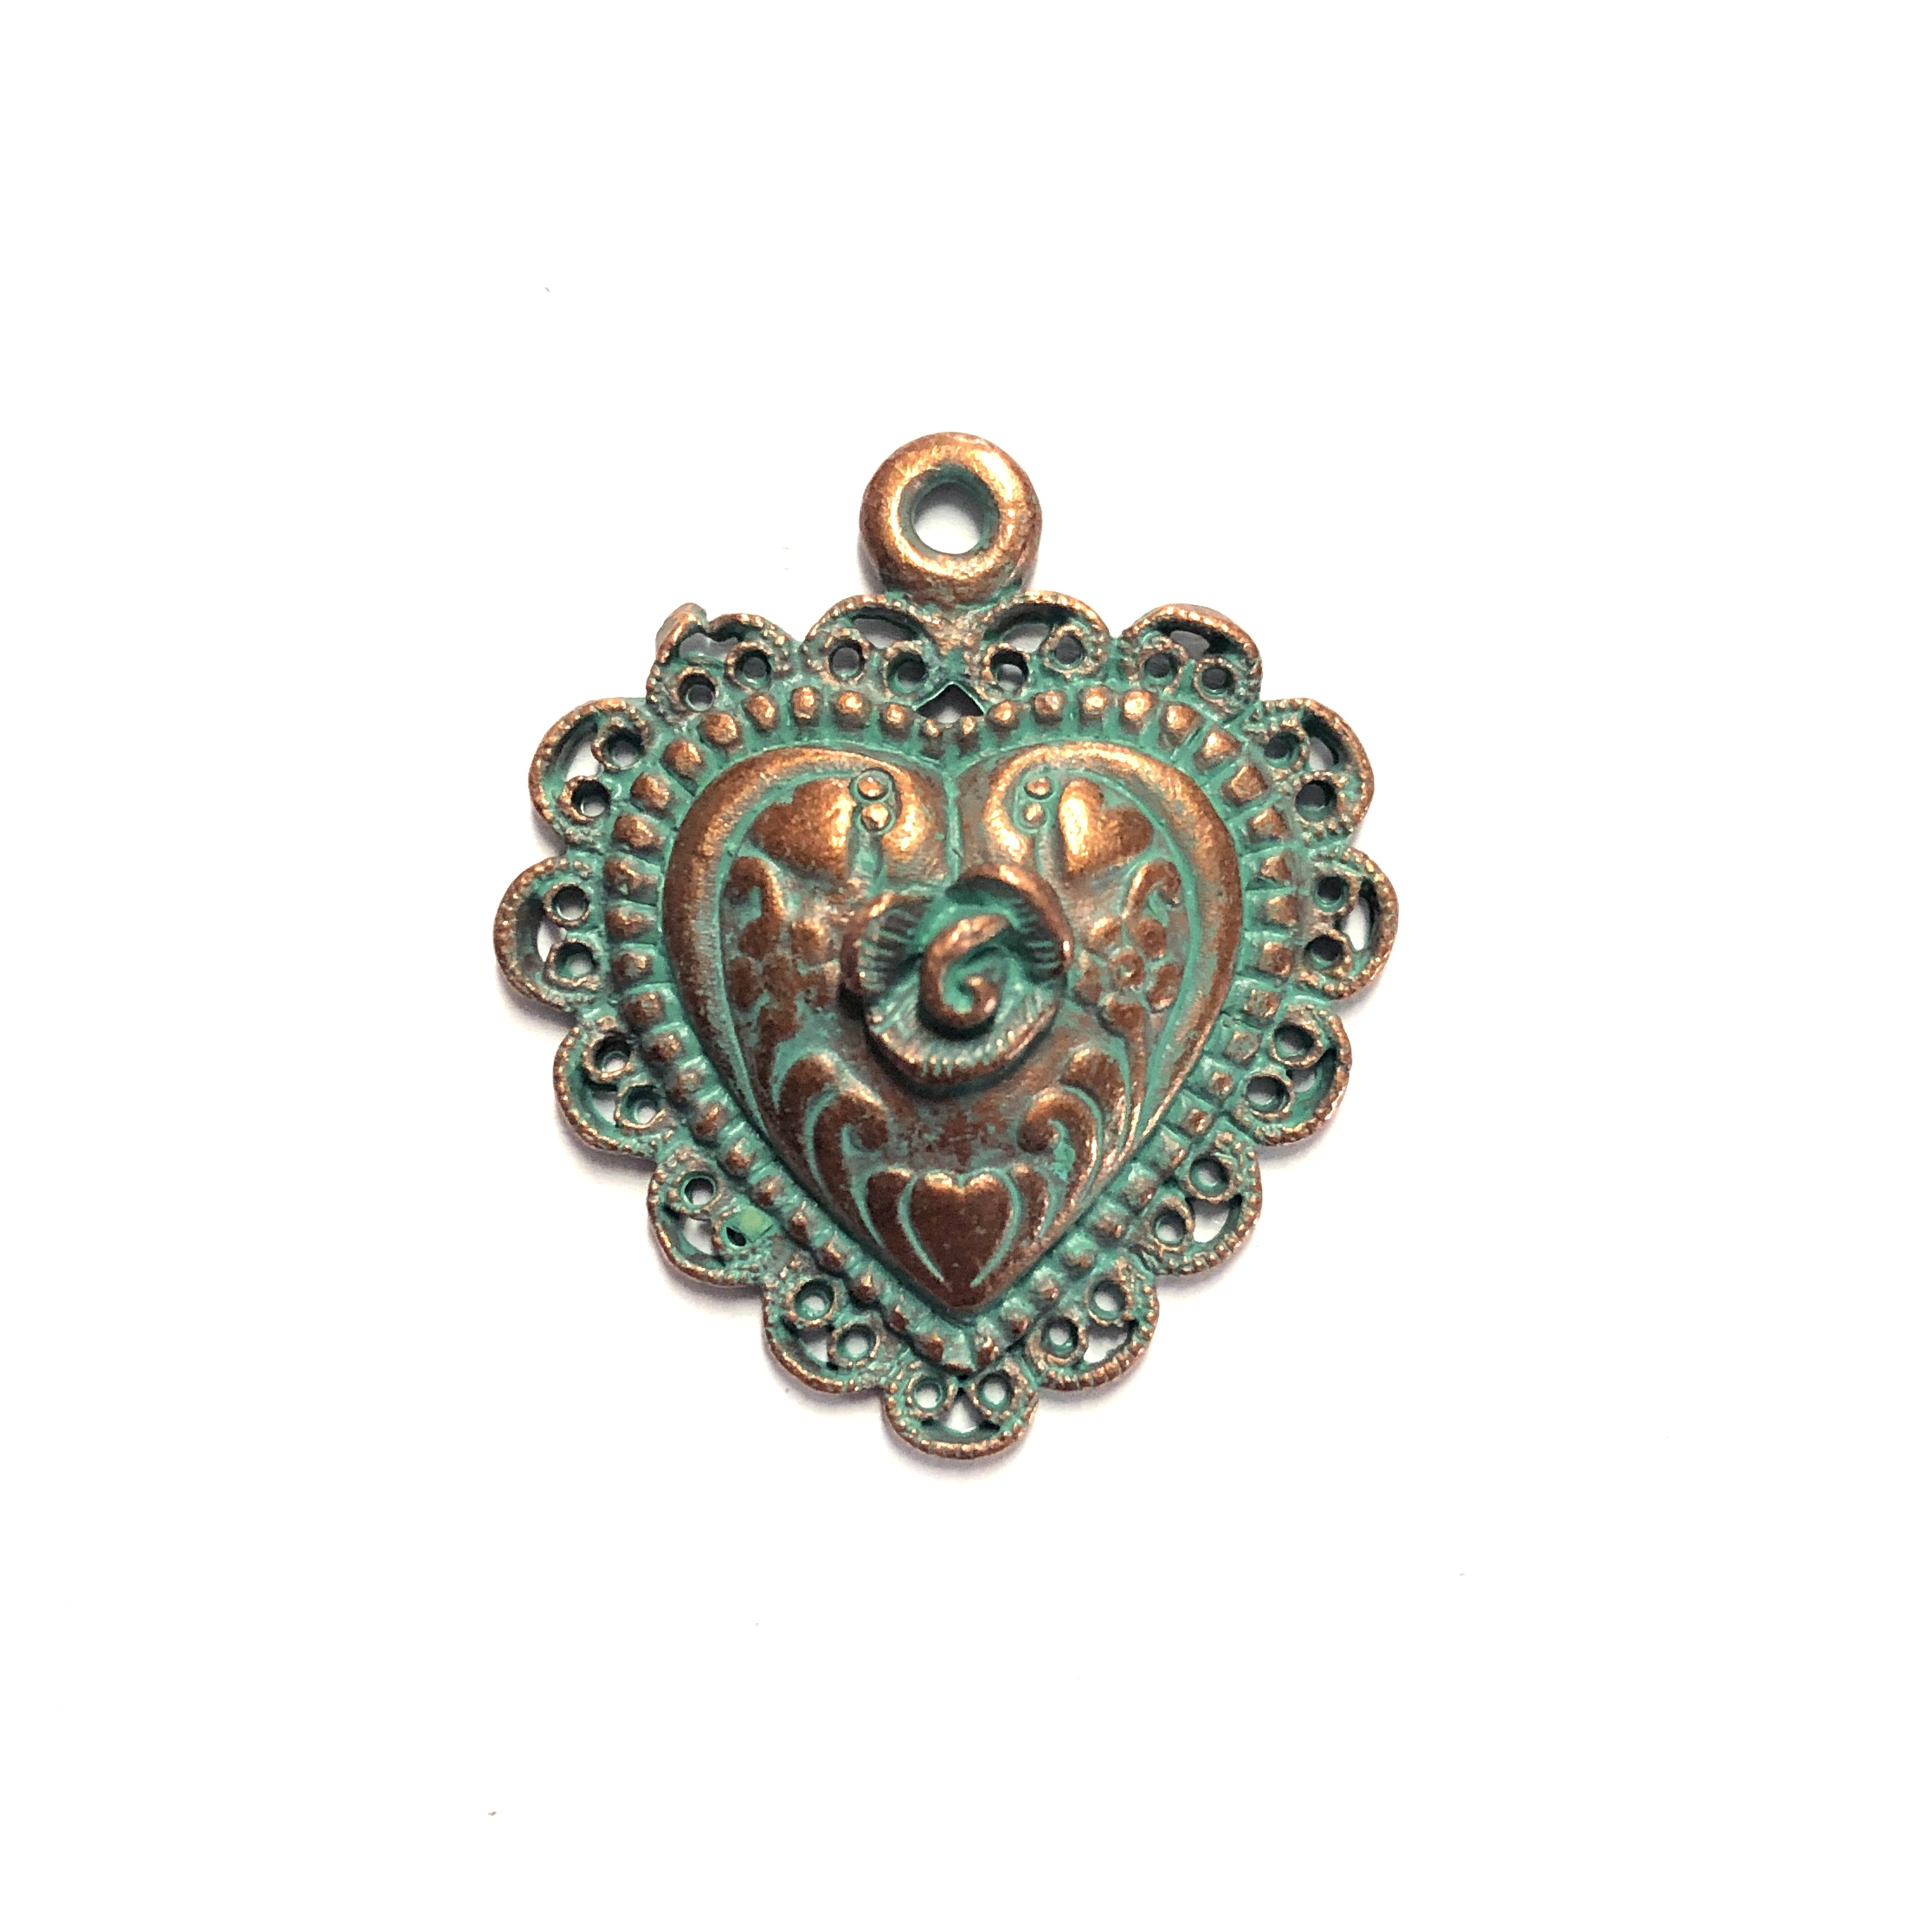 weathered copper pewter, rose heart pendant, 0238, heart charm, vintage, B'sue by 1928, lead free pewter castings, cast pewter jewelry findings, made in the USA, flower charm, weathered green patina, heart charm, 1928 Company, B'sue Boutiques